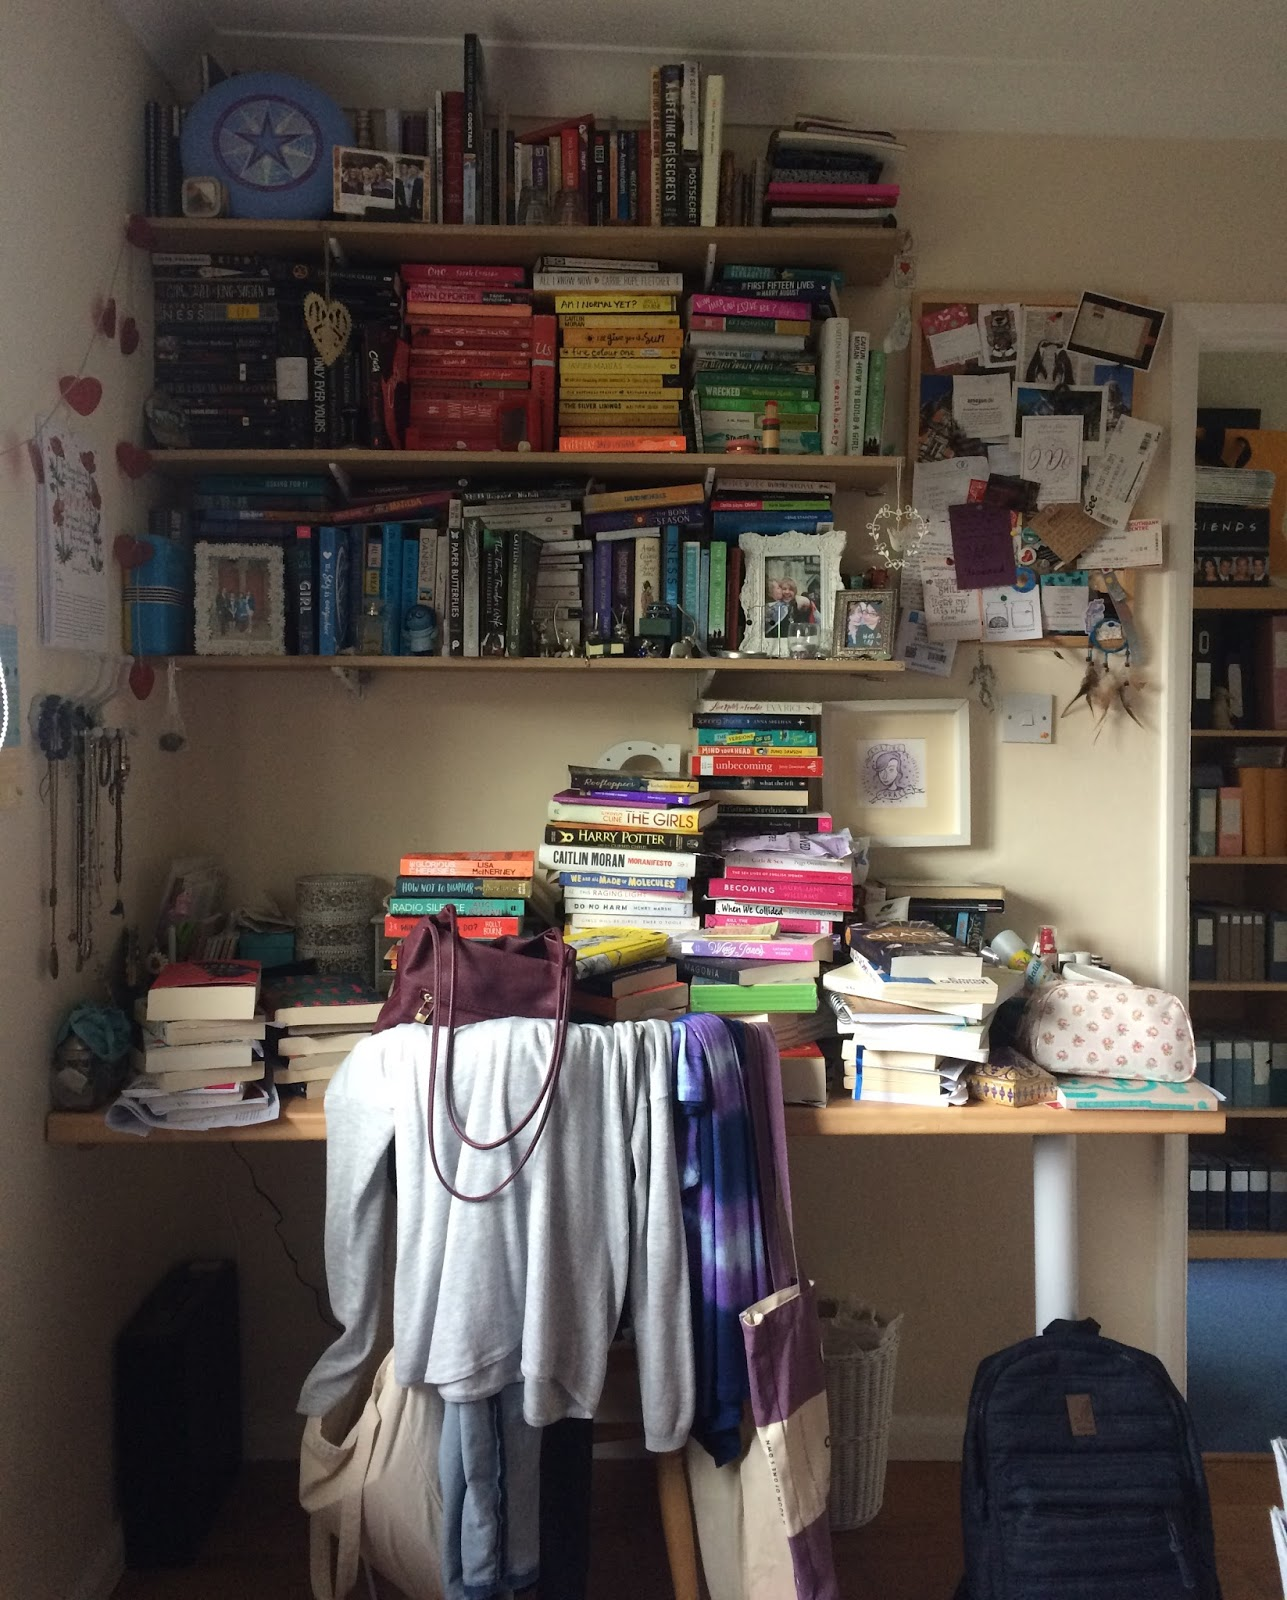 Co colour coordinated bookshelf - Of Course I Knew If I Was Going To Go For The Rainbow Look I D Have To Call In The Pro My Whip Smart Organiser Supreme Clare H H